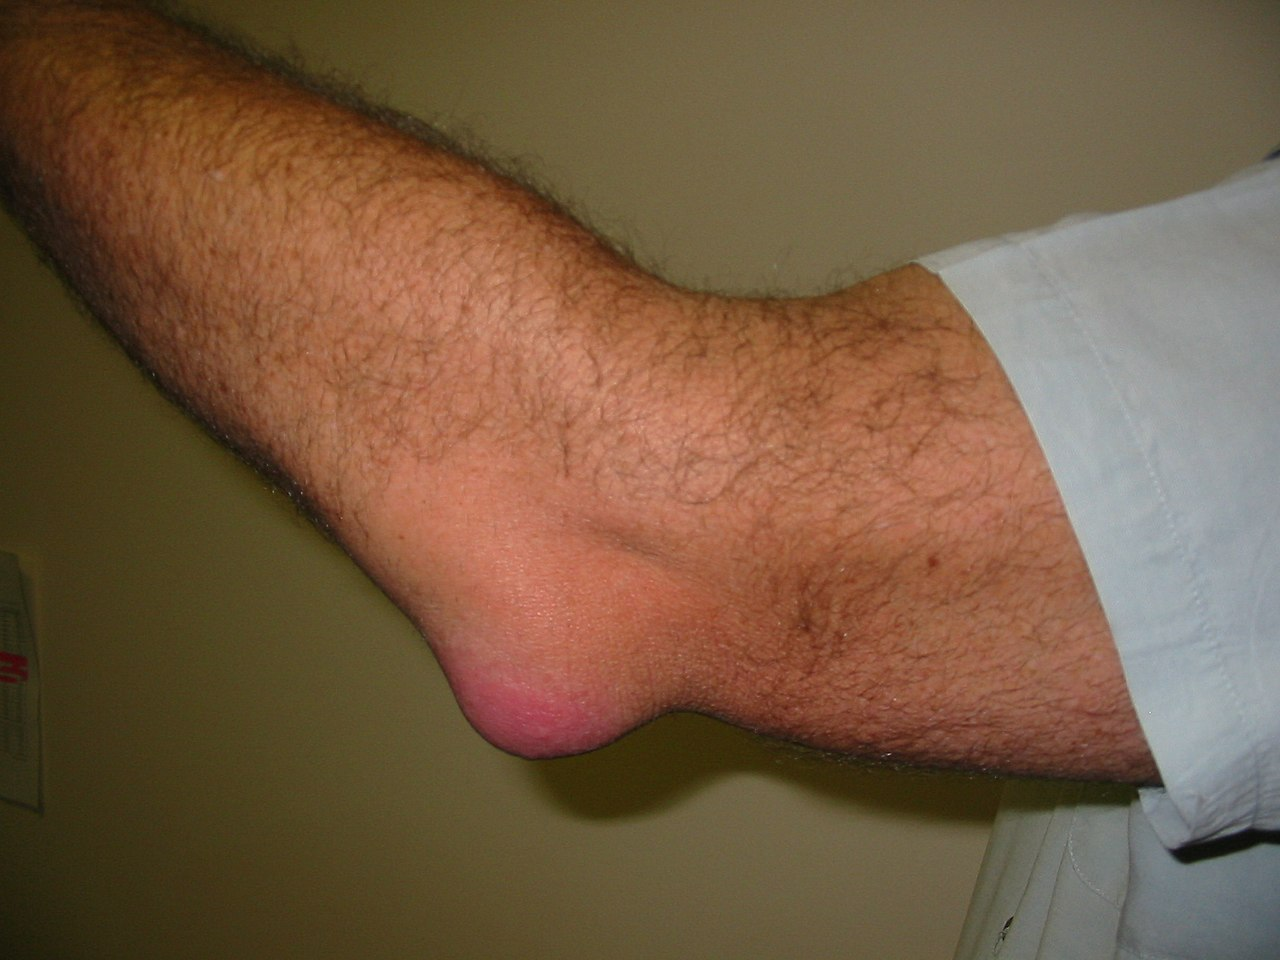 File:Bursitis Elbow WC.JPG - Wikimedia Commons